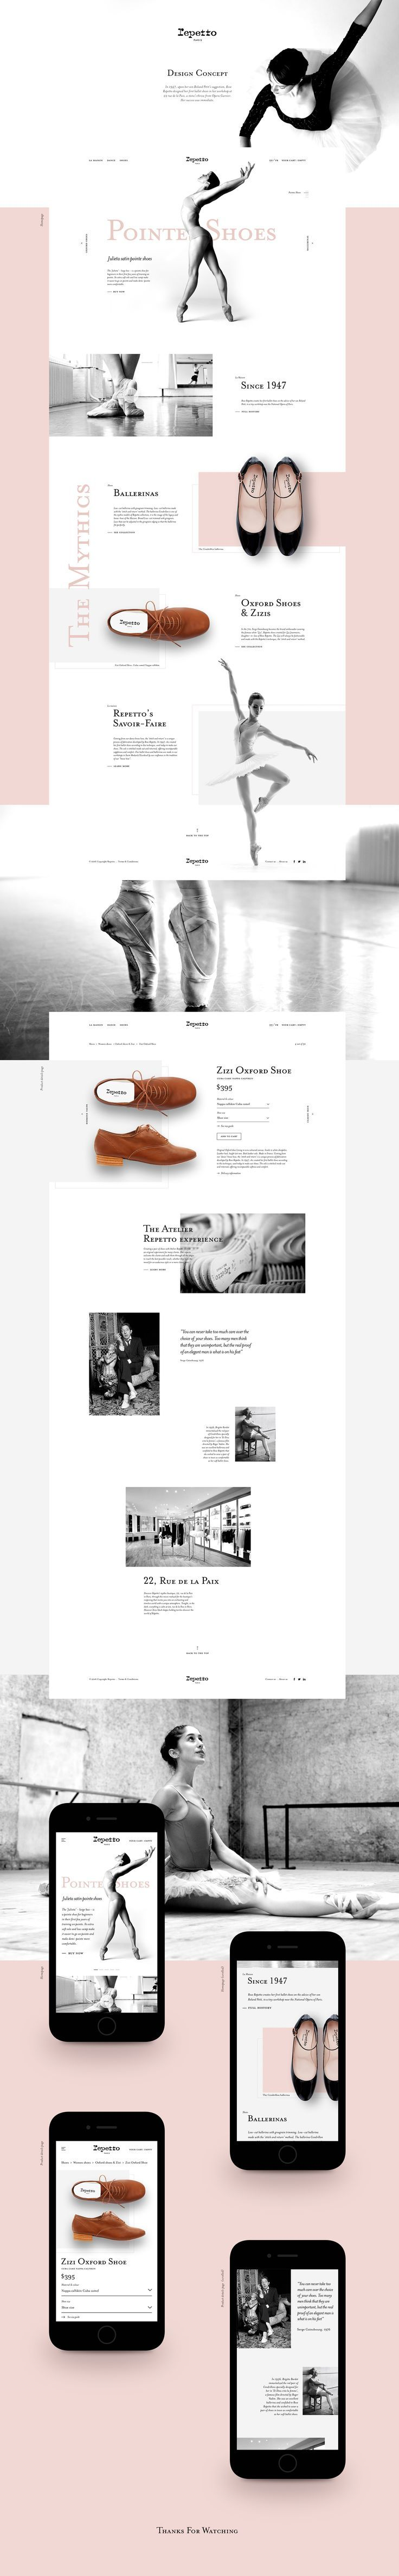 "Check out this @Behance project: ""Repetto Design Concept"" www.behance.net/..."